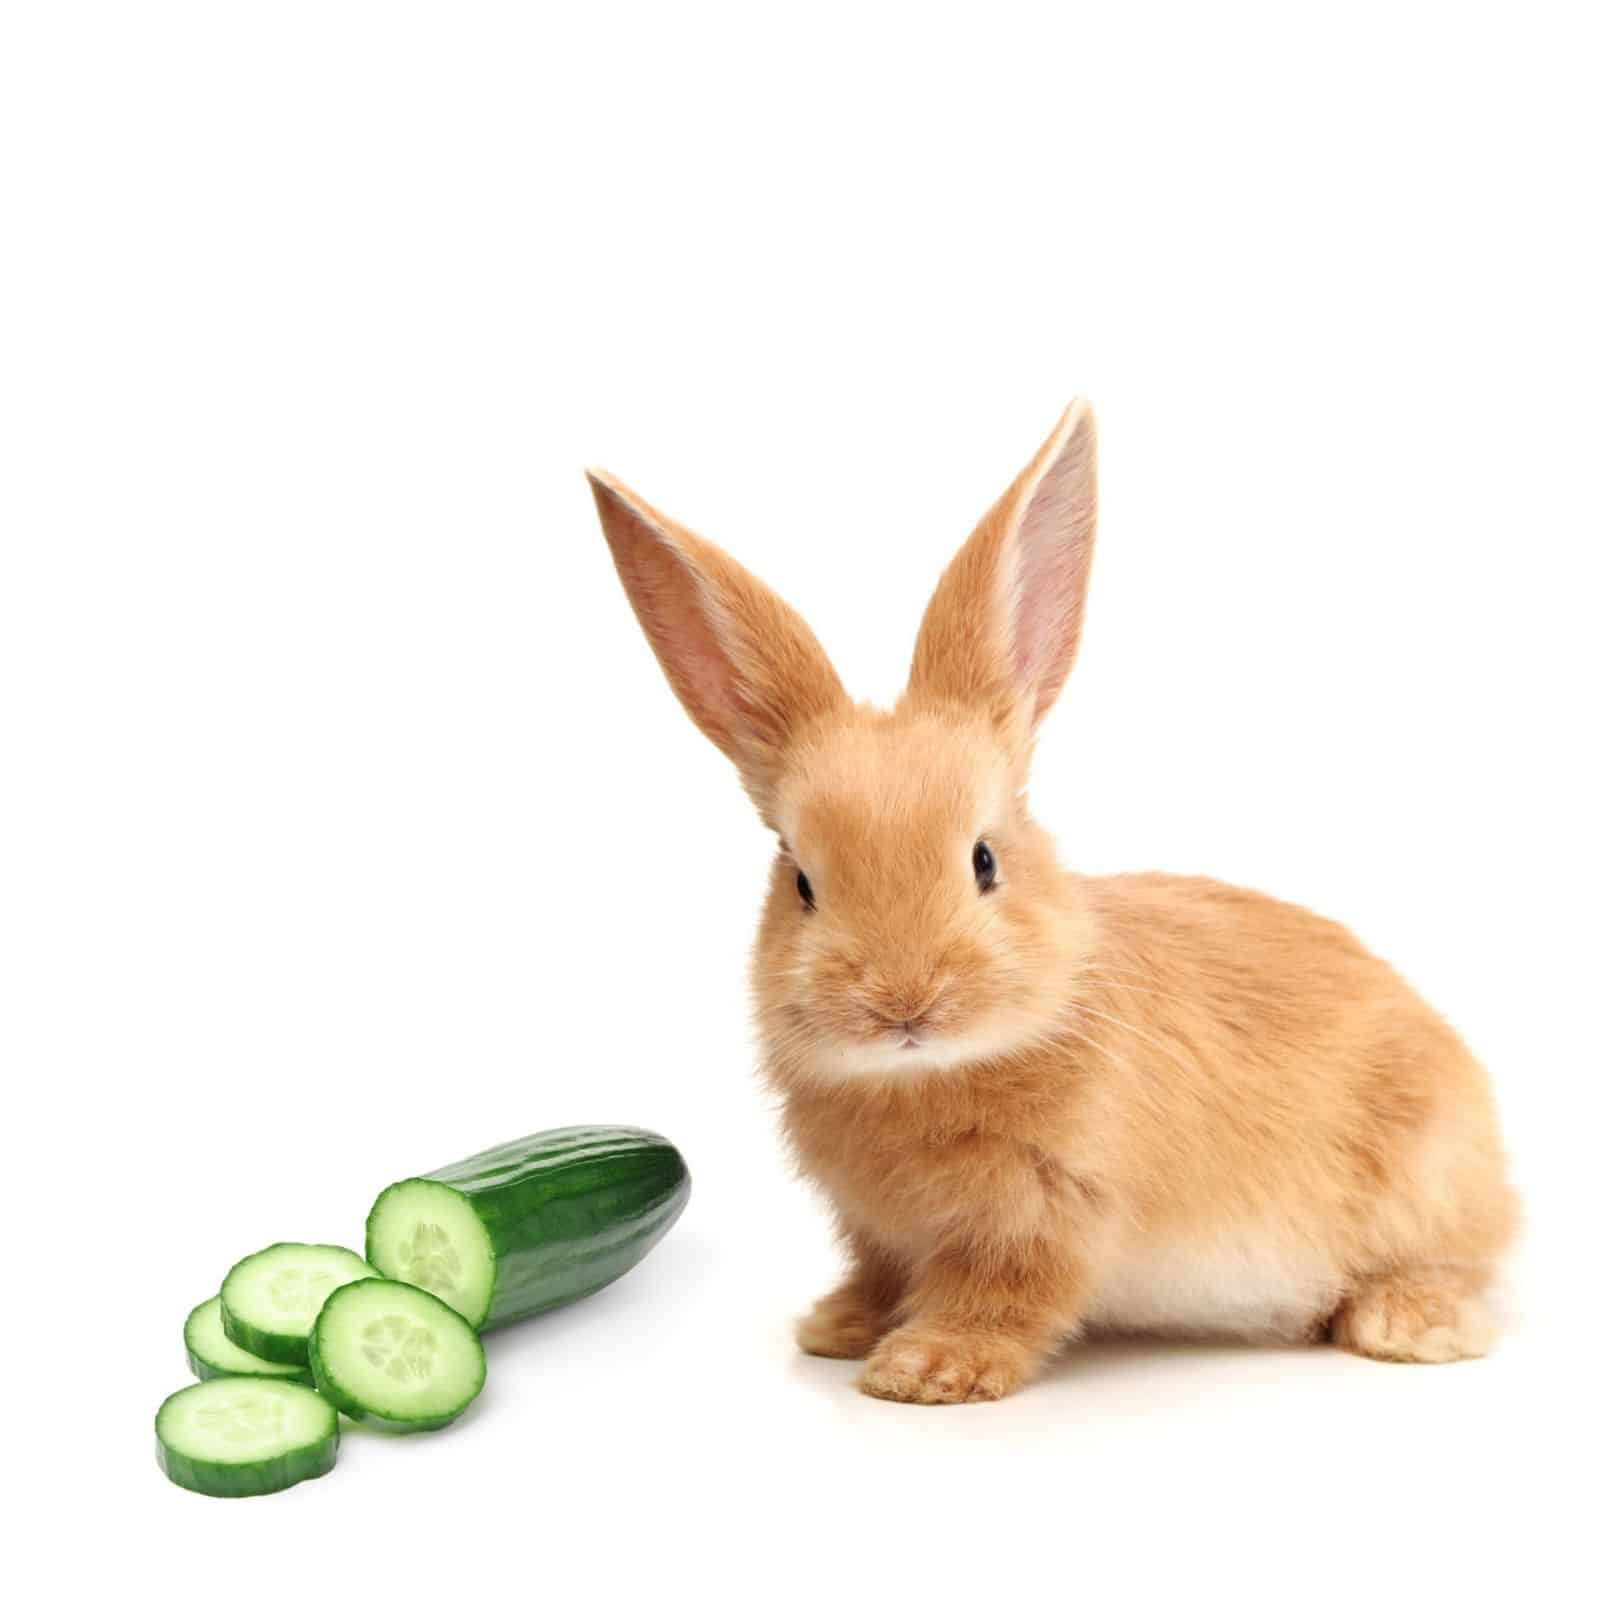 Can rabbits eat cucumbers